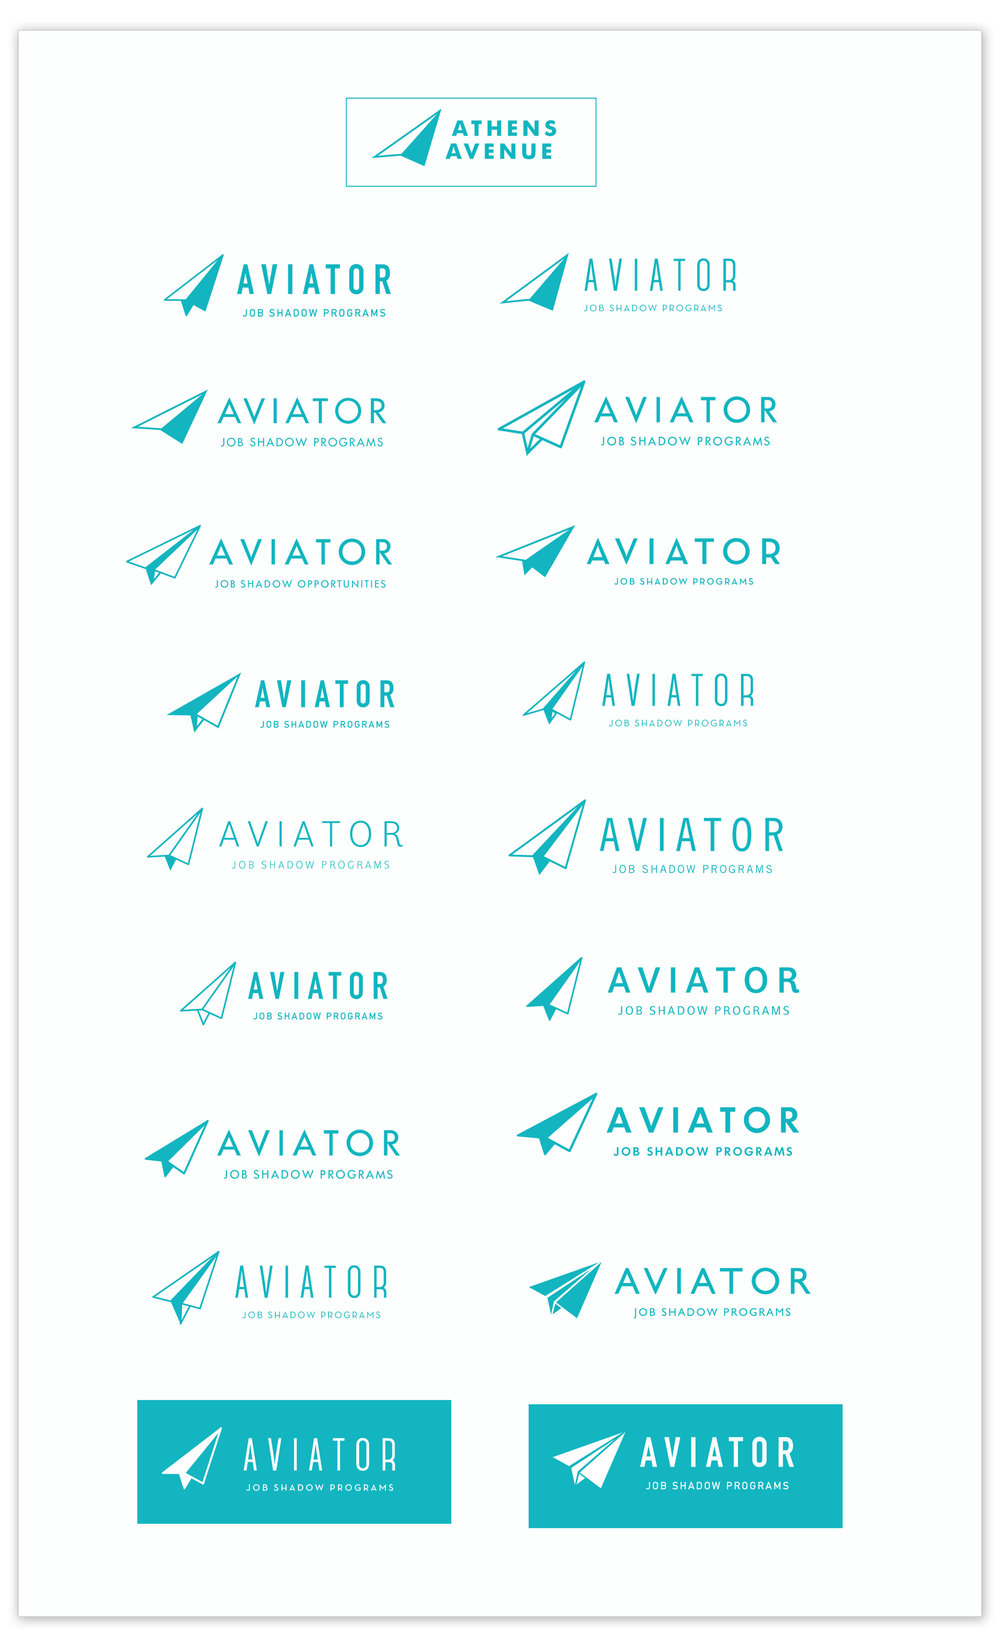 In the change to Aviator the client wanted to alter the compus arrow to resemble a paper air plane and add a tagline. Here are the options the client was given.